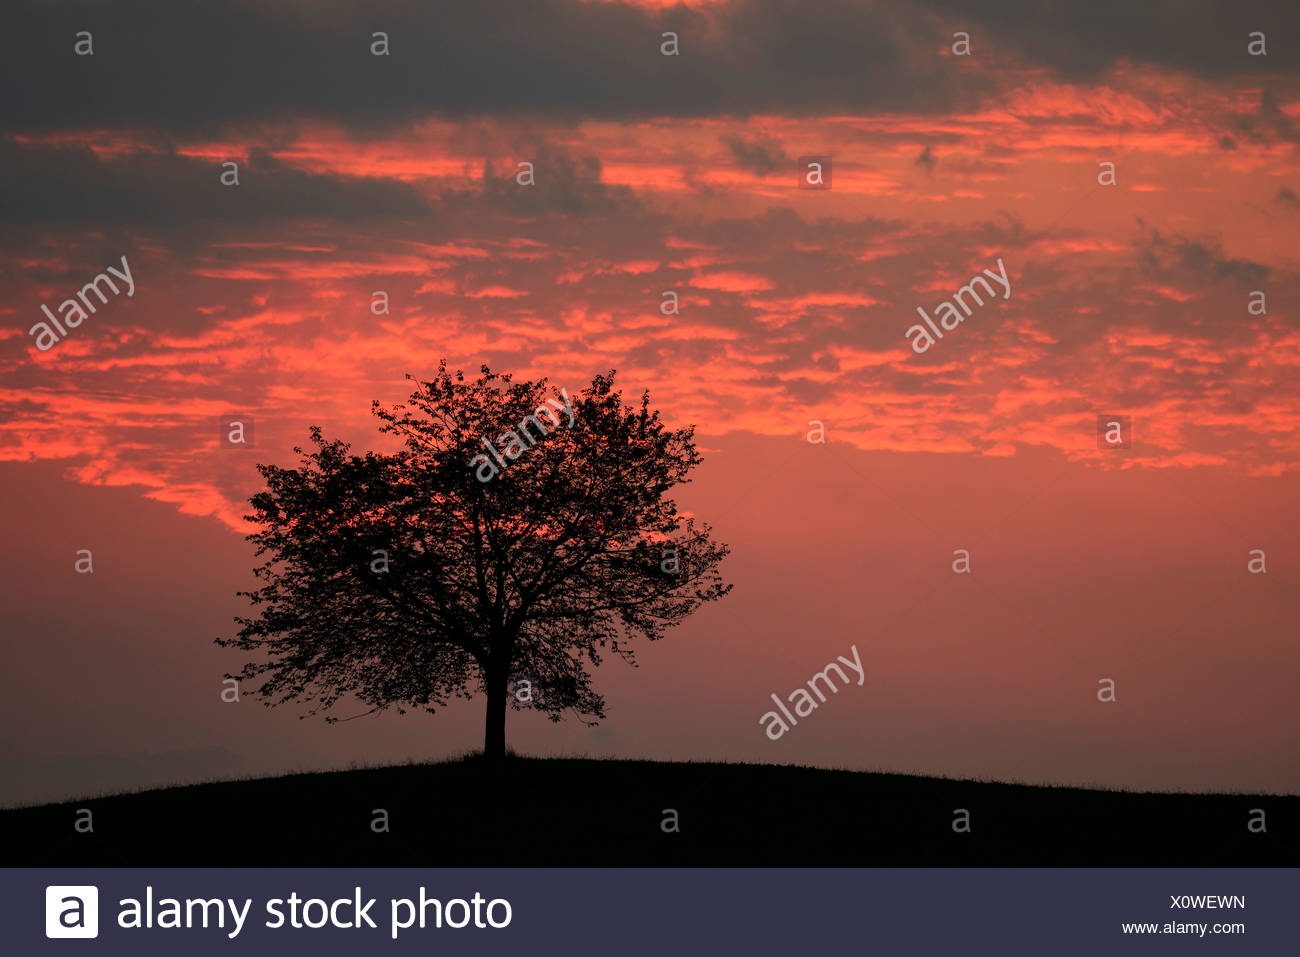 Tree silhouetted against a sky full of storm clouds - Stock Image